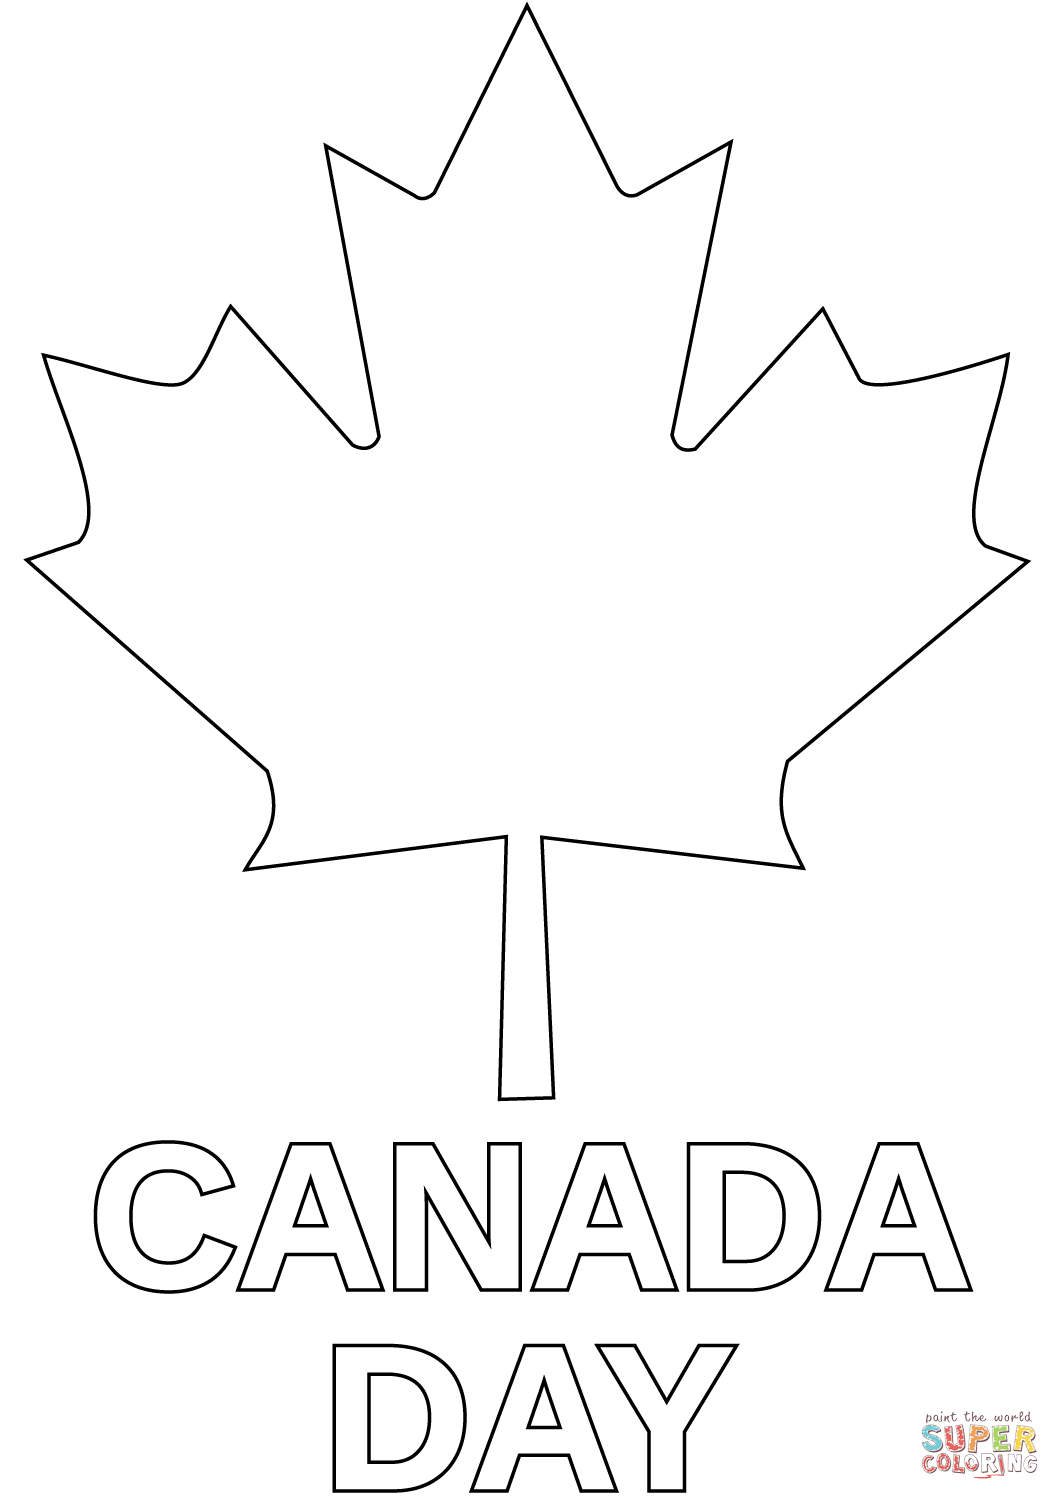 Canada Day Coloring Page